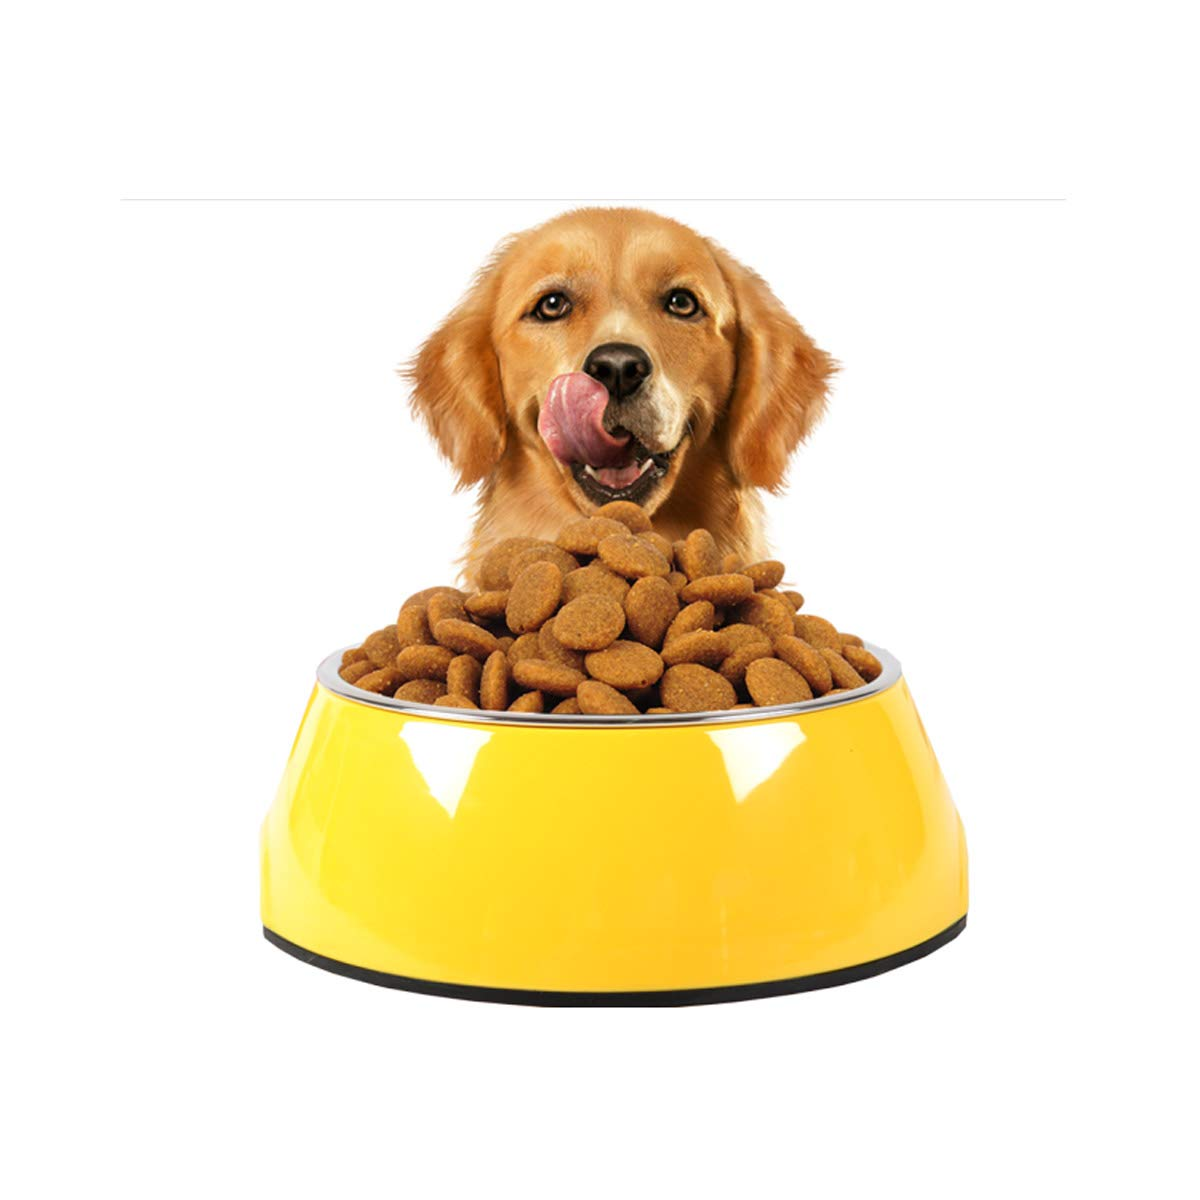 Yellow M Yellow M XIAN Cat Bowl, Cat Food Bowl, Dog Food Bowl, Pet Supplies, Ceramic Bowl, Cat Feeder, Dog Food Bowl, Best Gift Easy to Clean Bacteria & Rust Resistant (color   Yellow, Size   M)